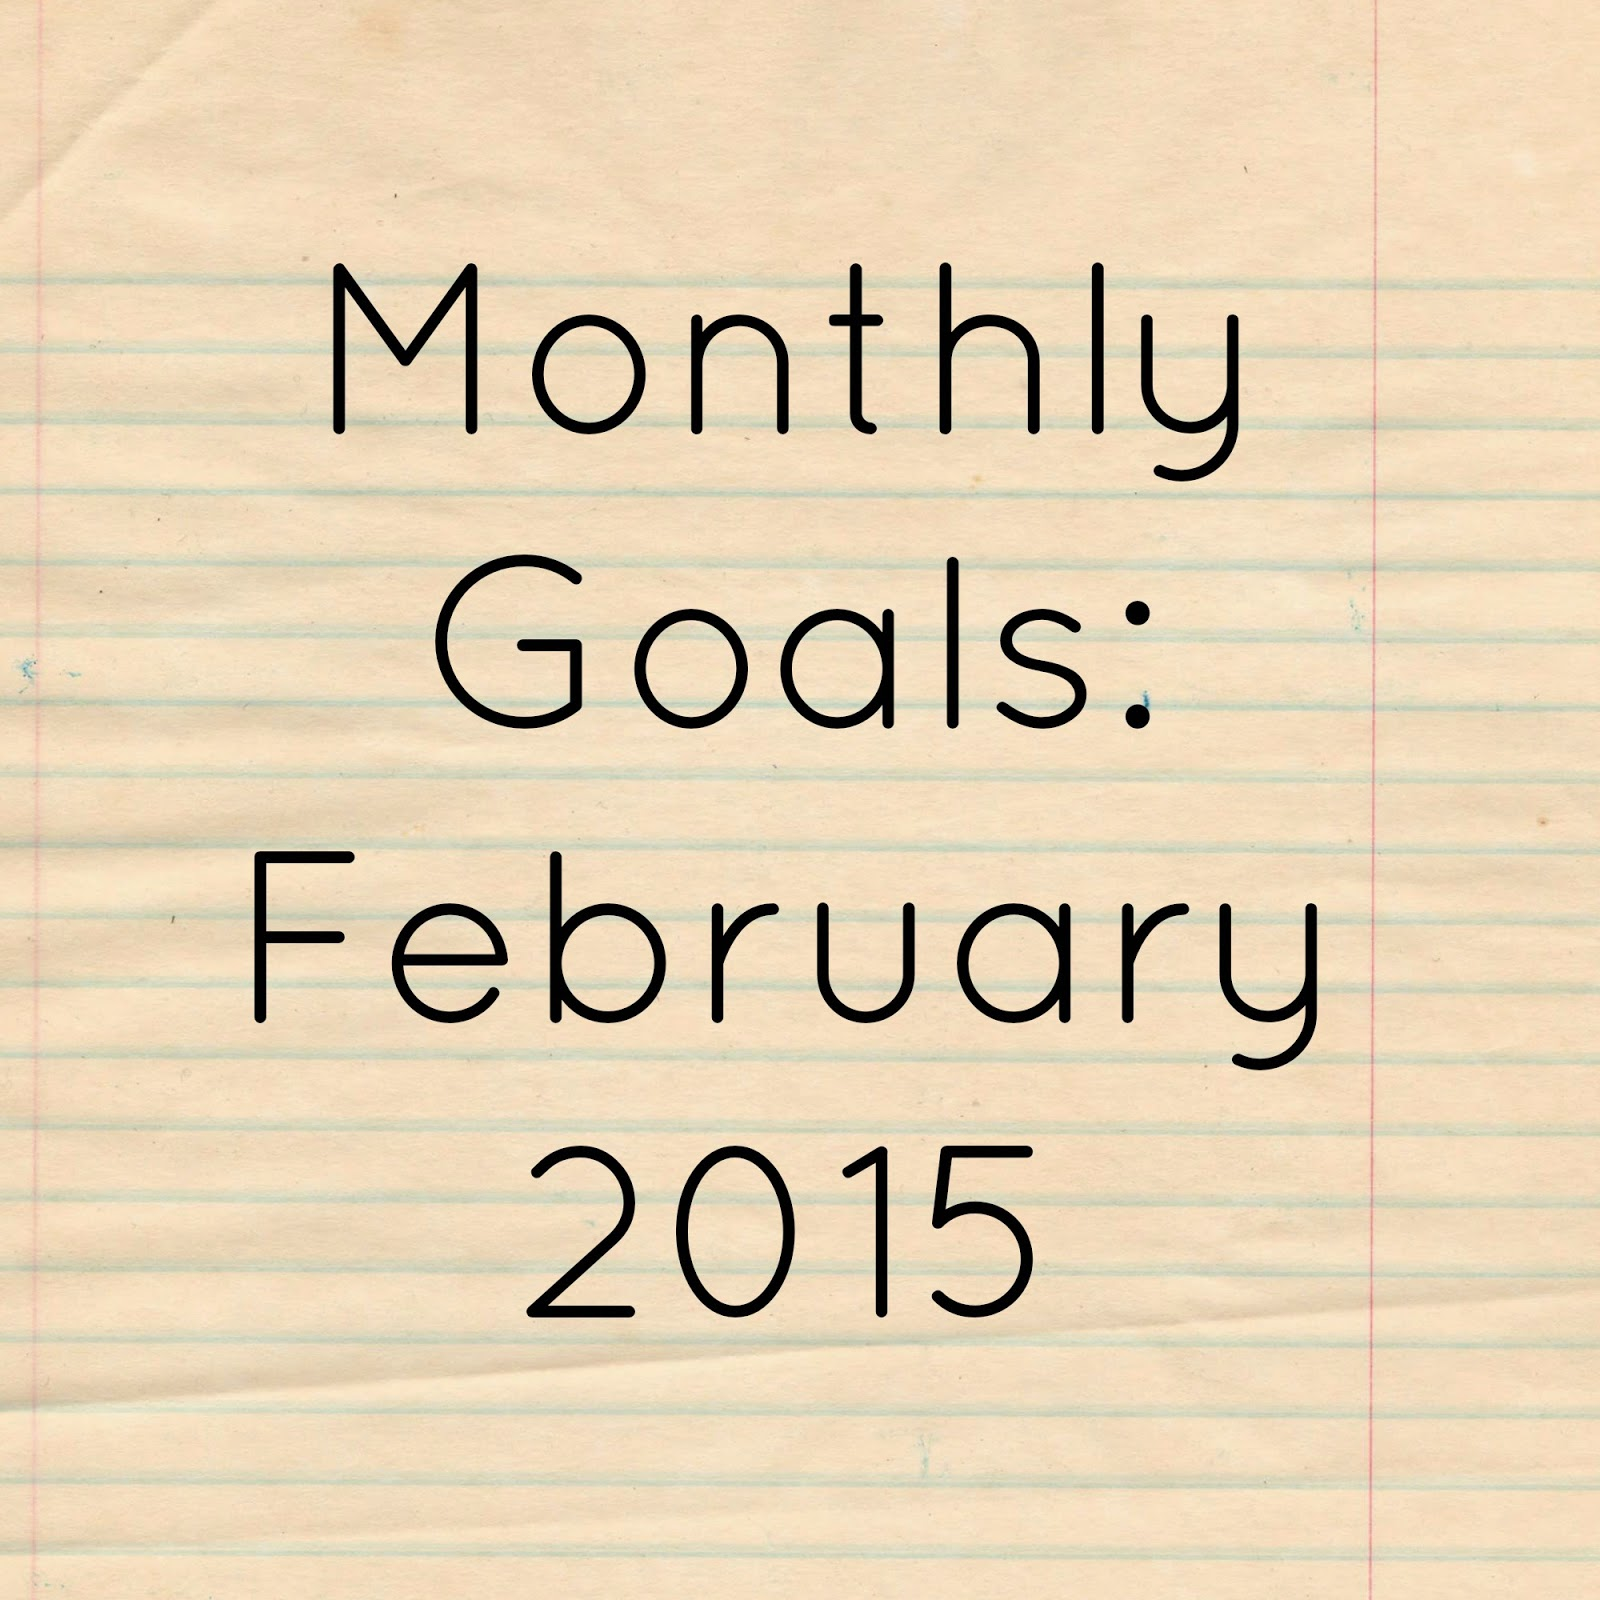 Monthly Goals: February 2015